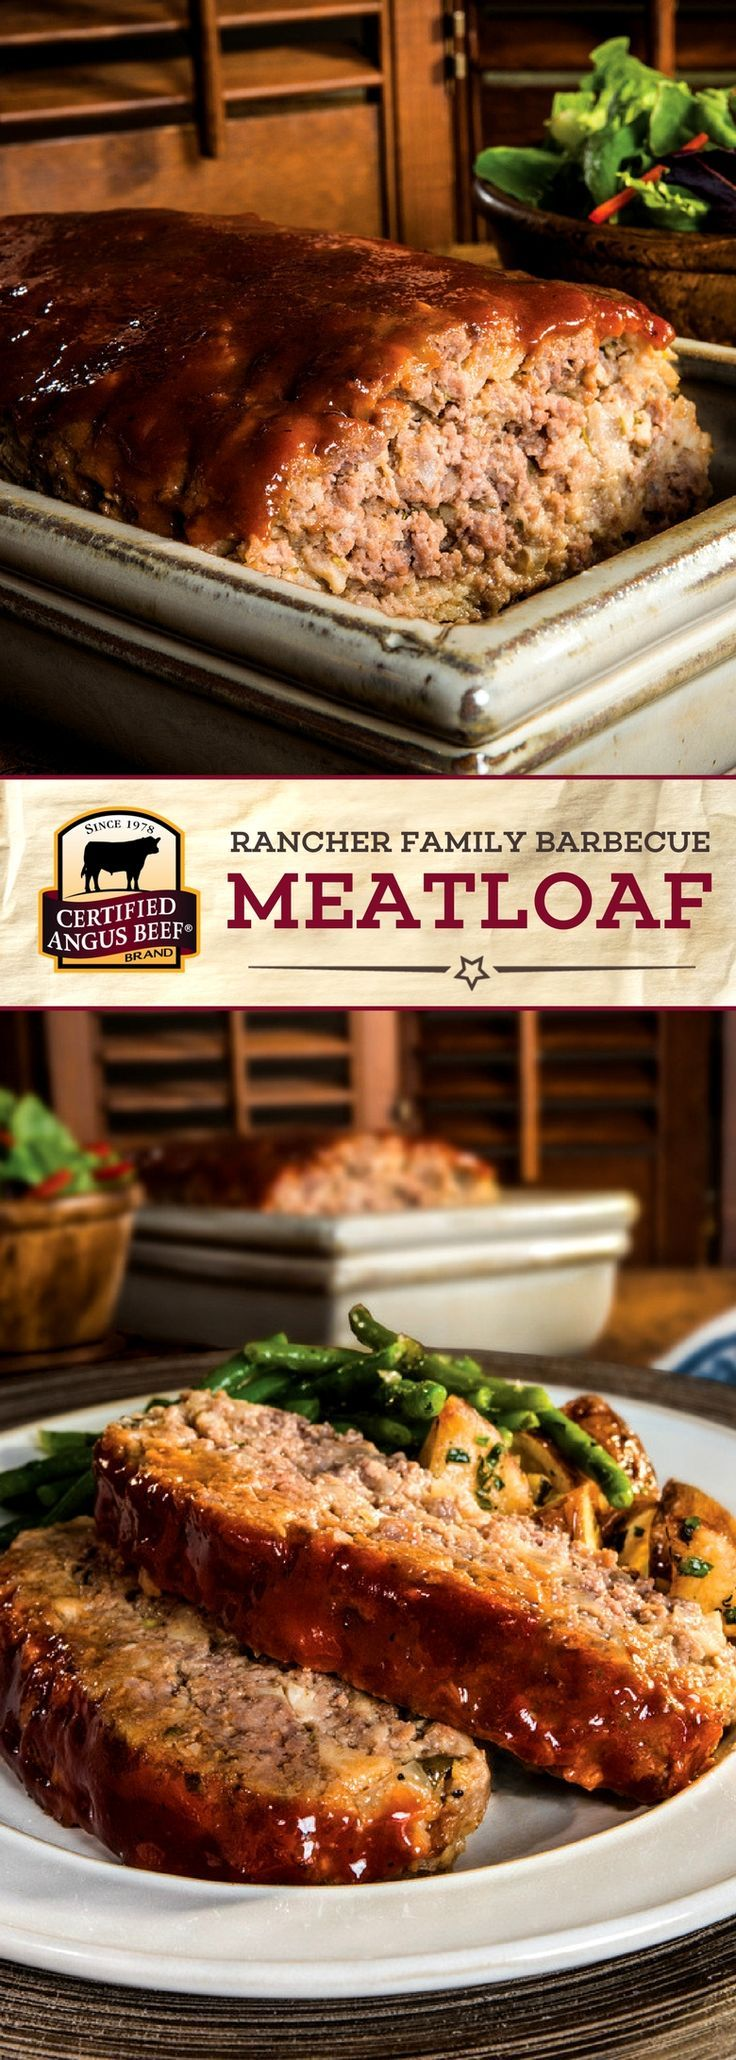 Certified Angus Beef®️️️️️ brand Rancher Family Barbecue Meatloaf is an EASY recipe that your family will LOVE! Barbecue sauce and Dijon mustard bring out the deep flavors of this lean ground beef meatloaf.